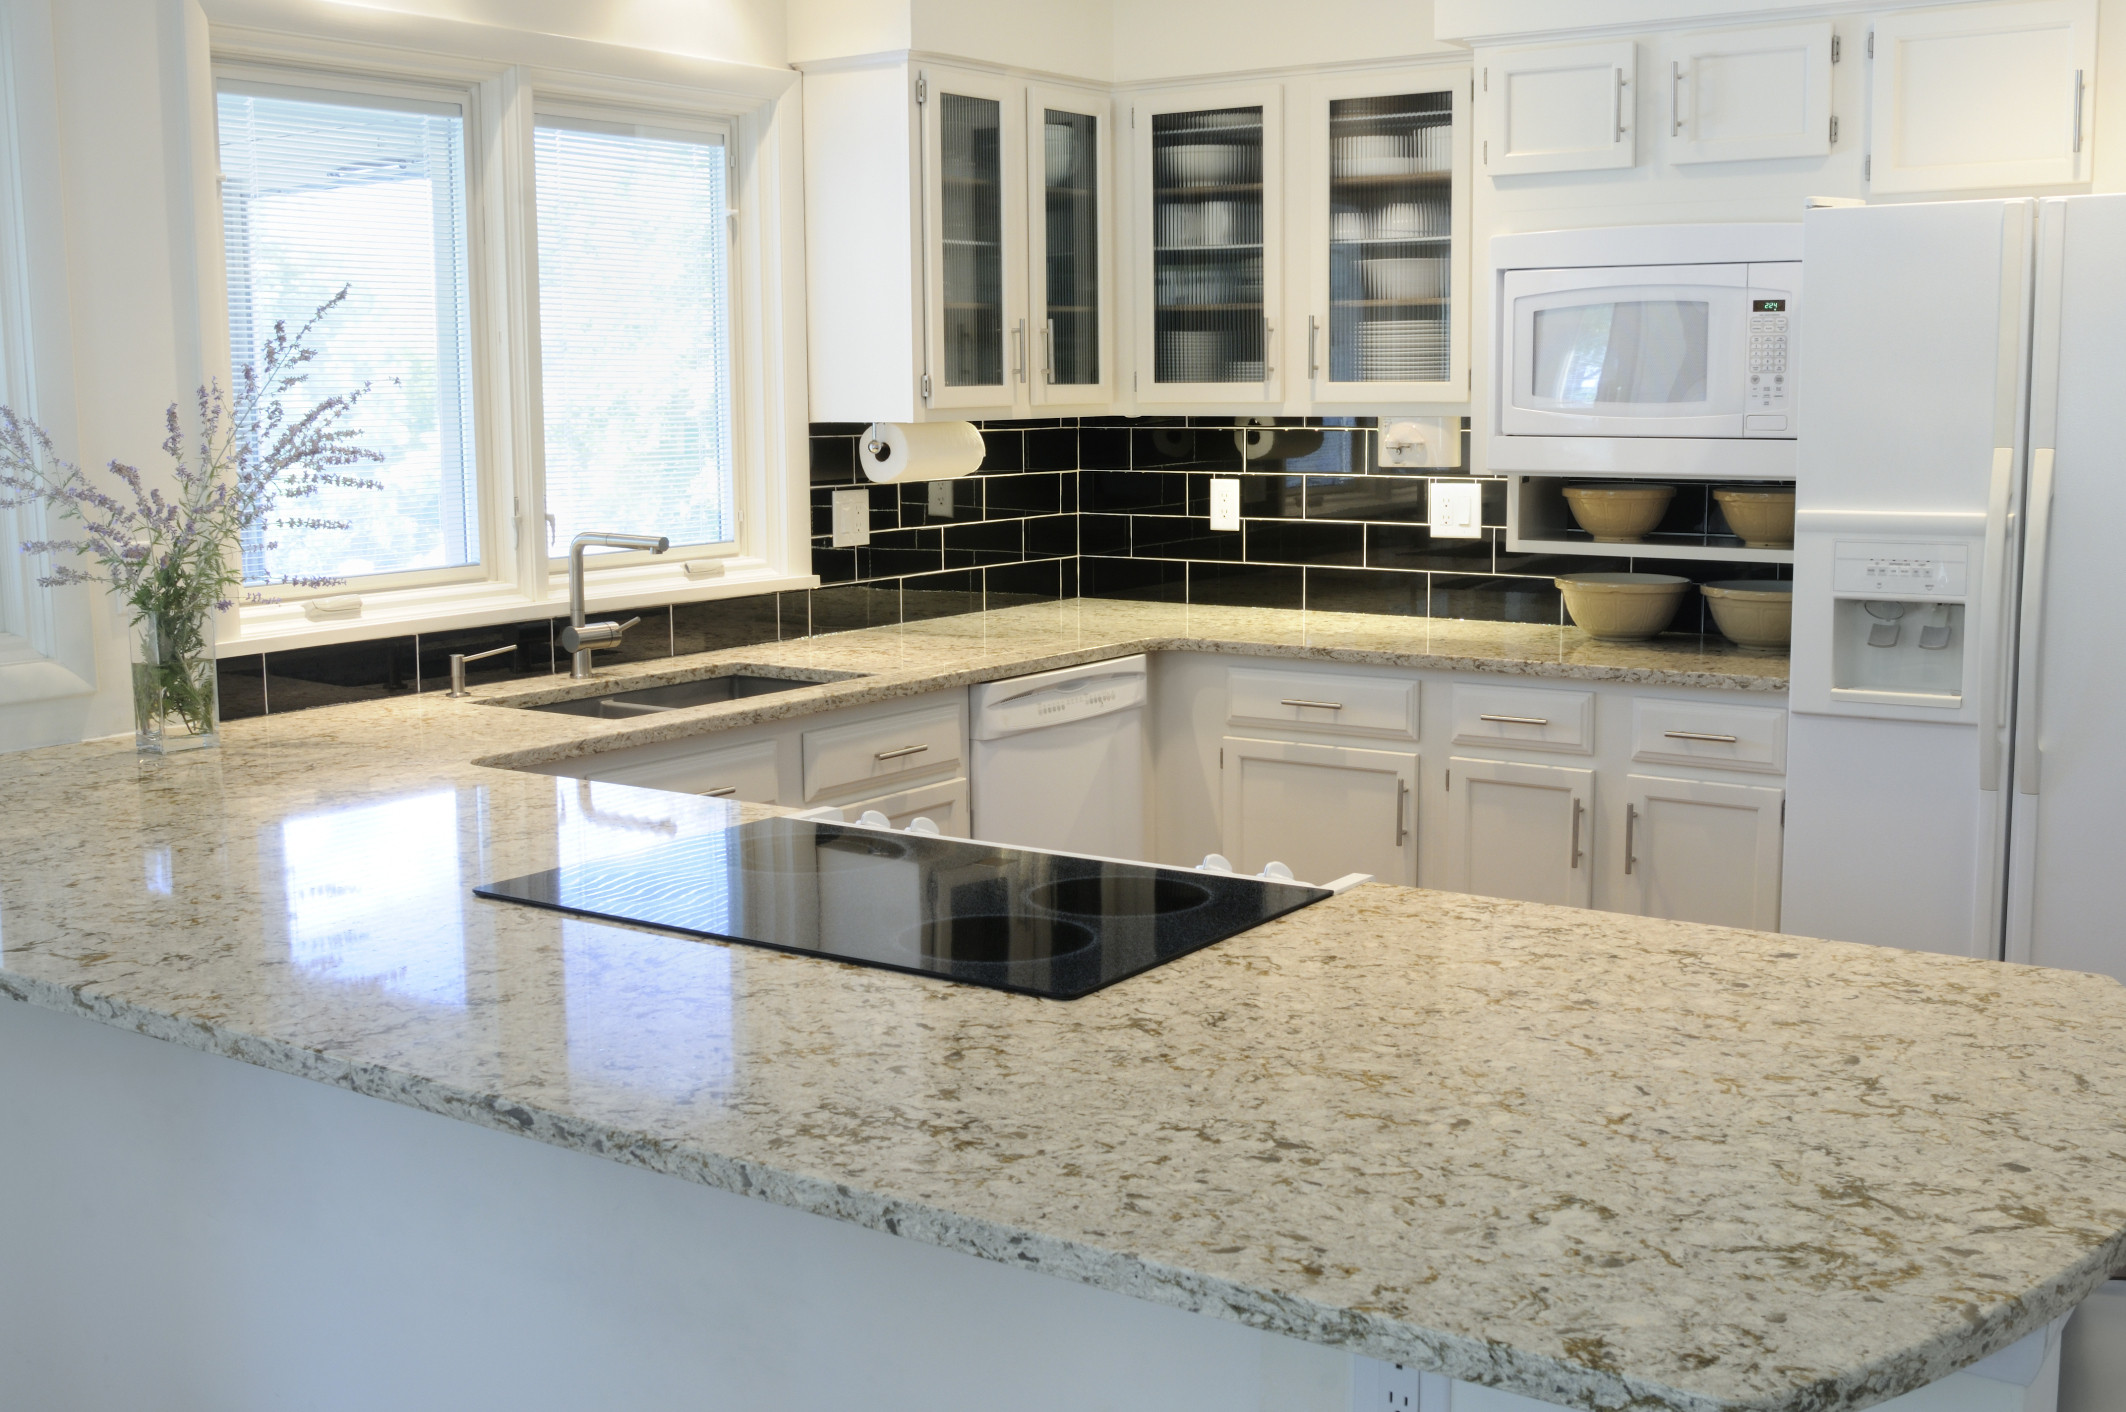 Best Granite For Kitchen 10 Reasons To Let Go Of The Granite Obsession Already Huffpost